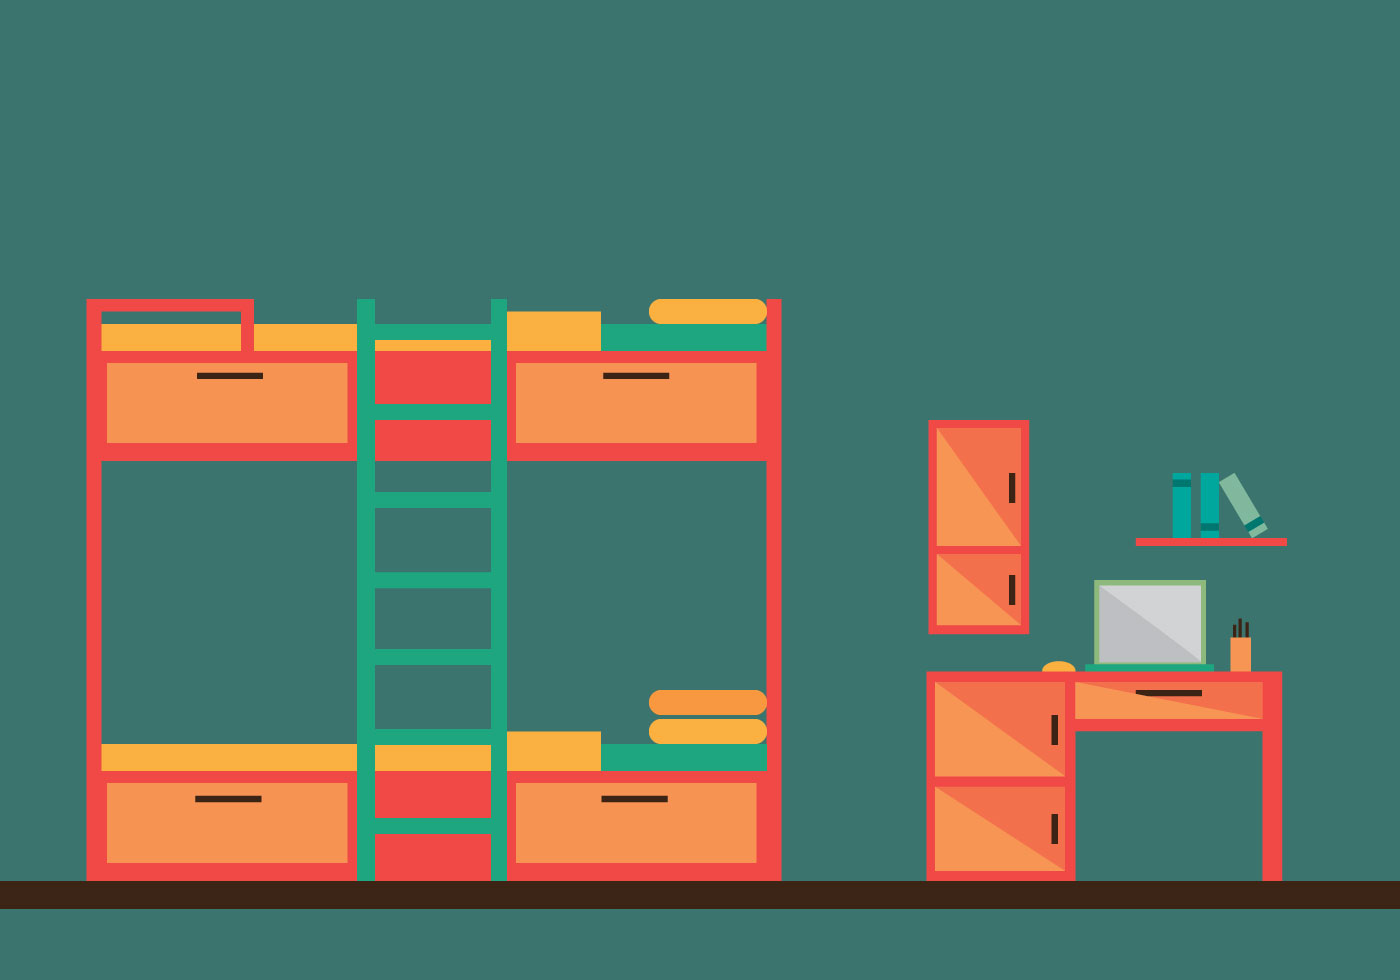 Free Bunk Bed Room Vector Illustration  Download Free Vector Art Stock Graphics  Images